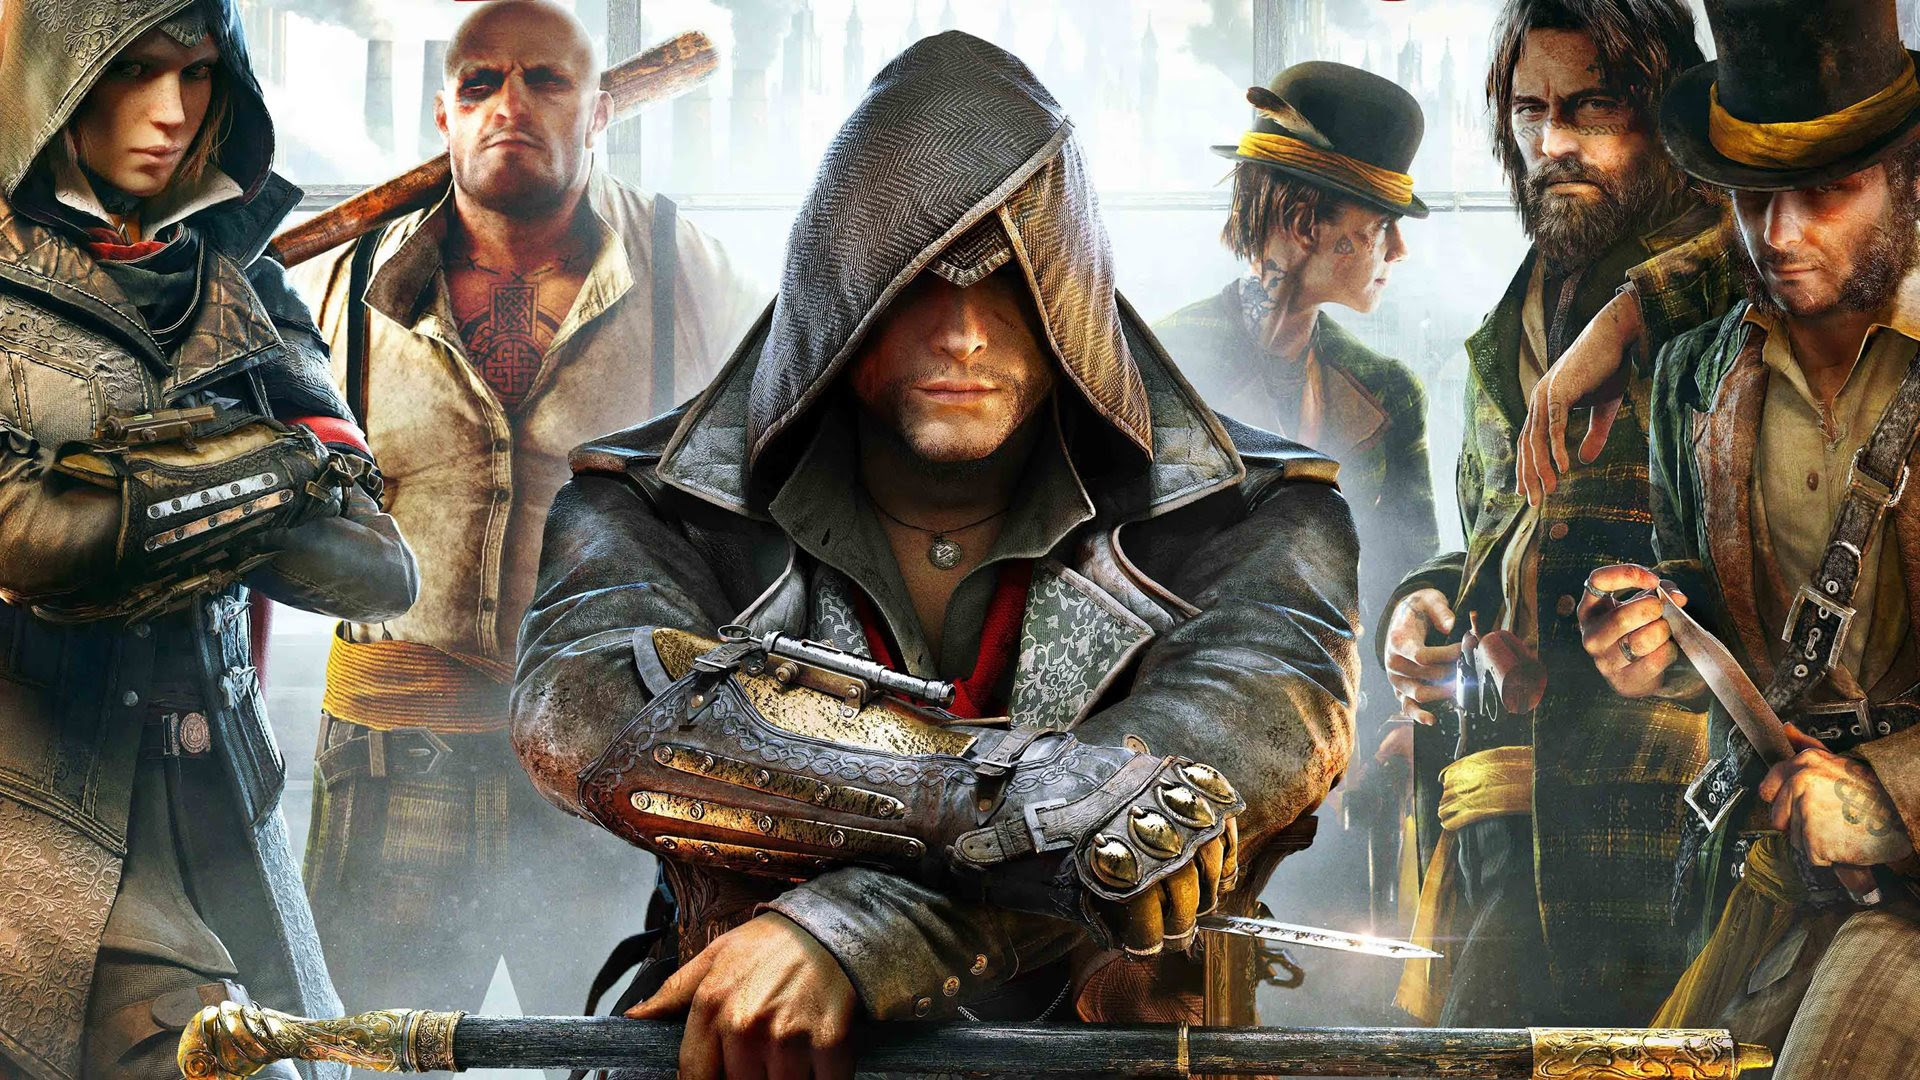 Assassin Creed Syndicate Gameplay Hd Wallpaper 02440